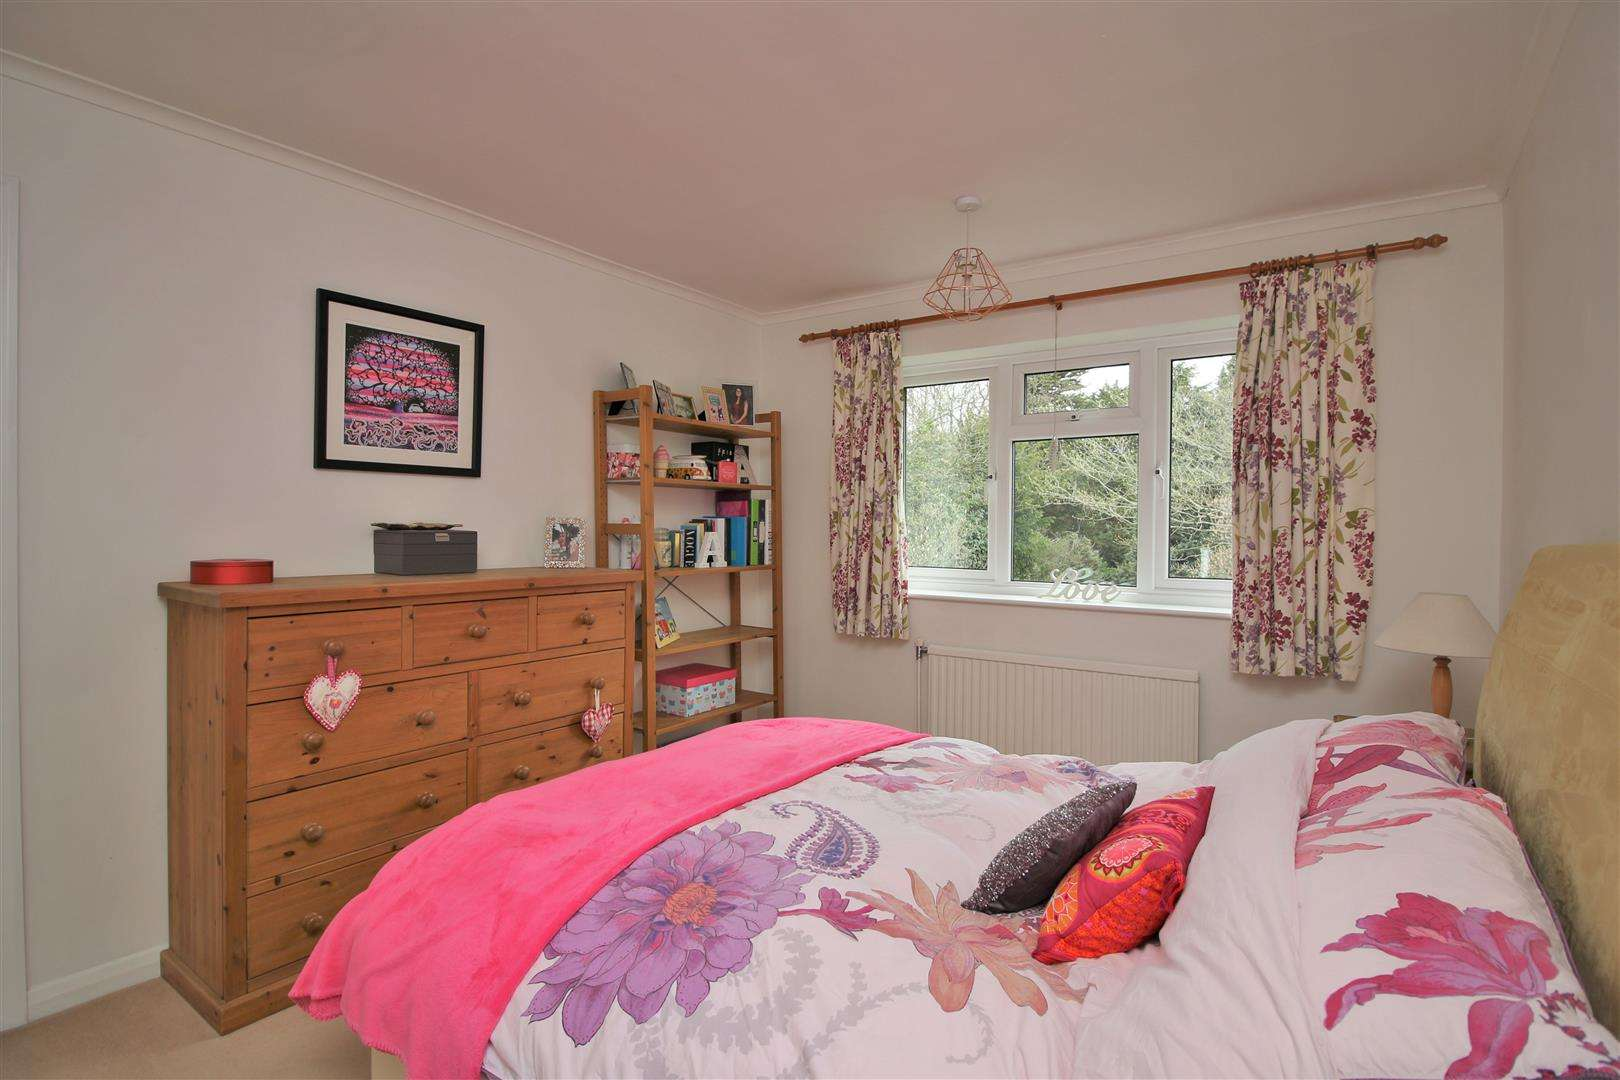 5 bed for sale - (Property Image 11)